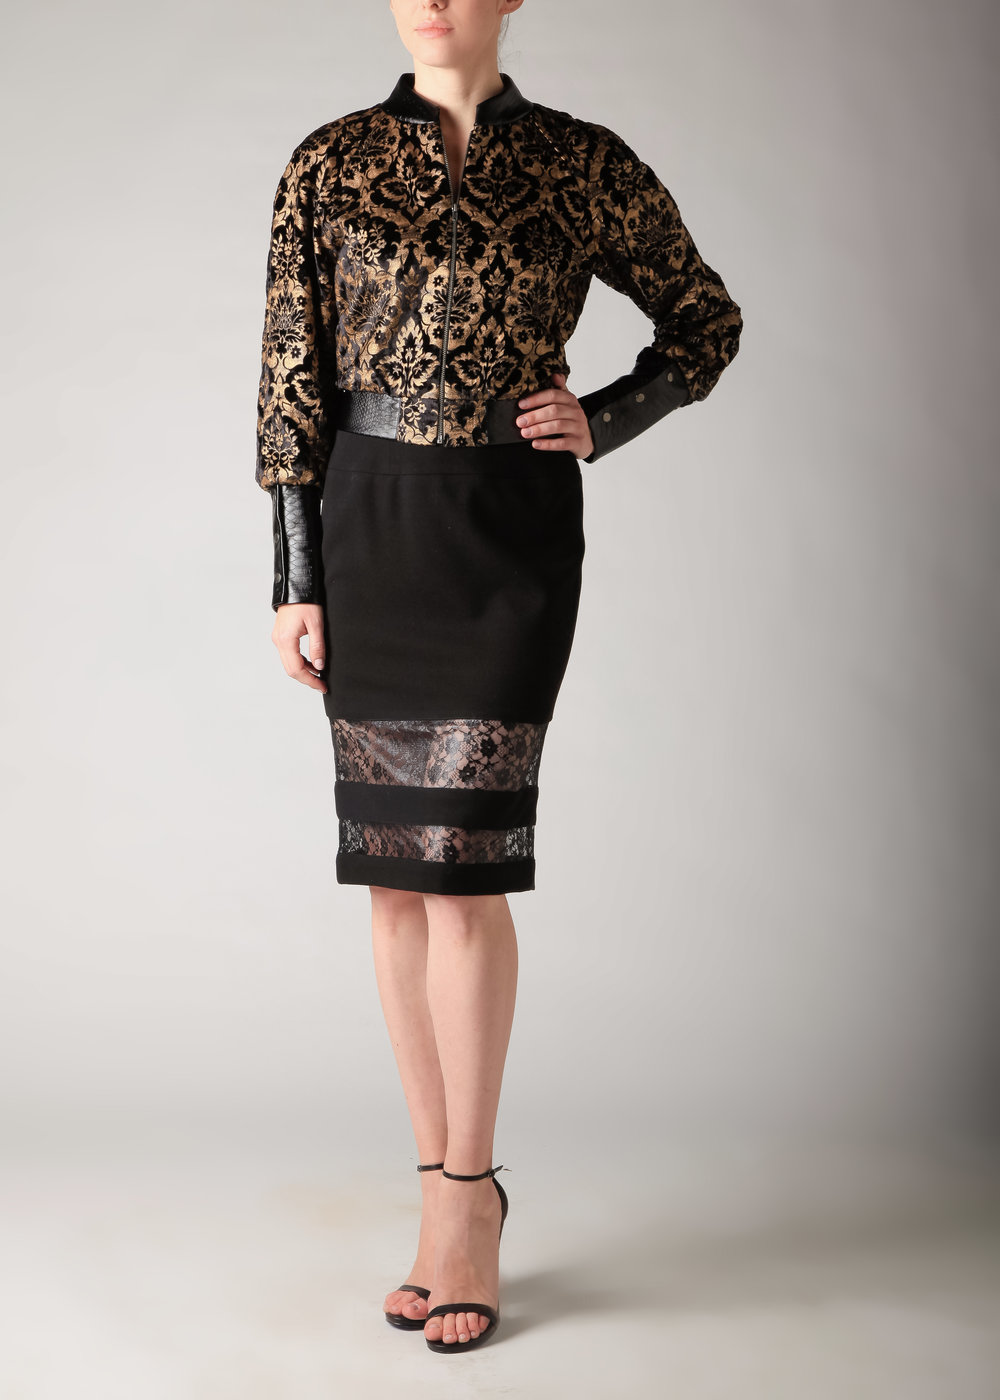 Pair it With - Lace Elton Skirt